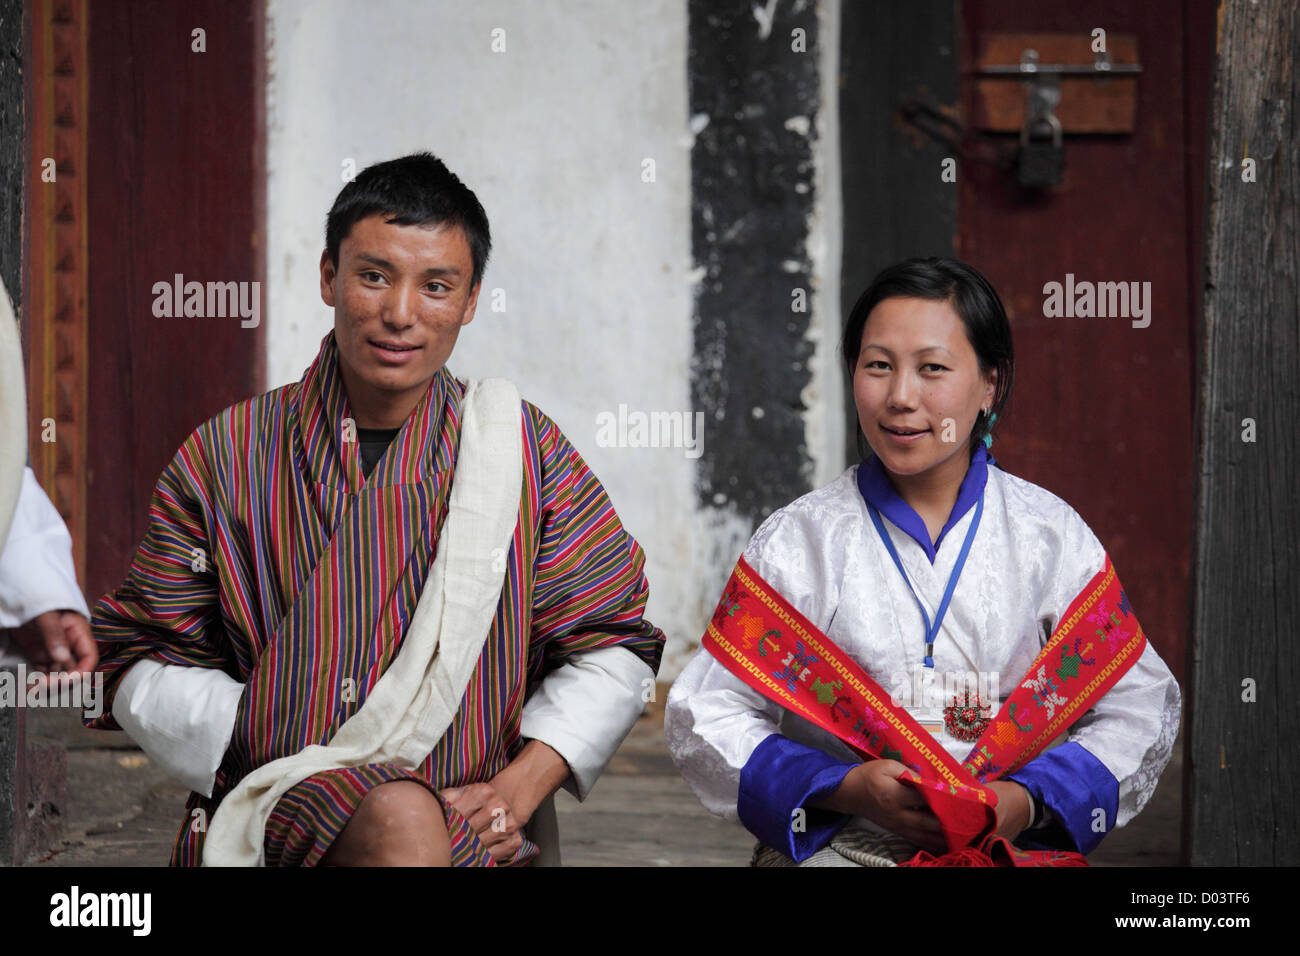 Monk and his wife. - Stock Image